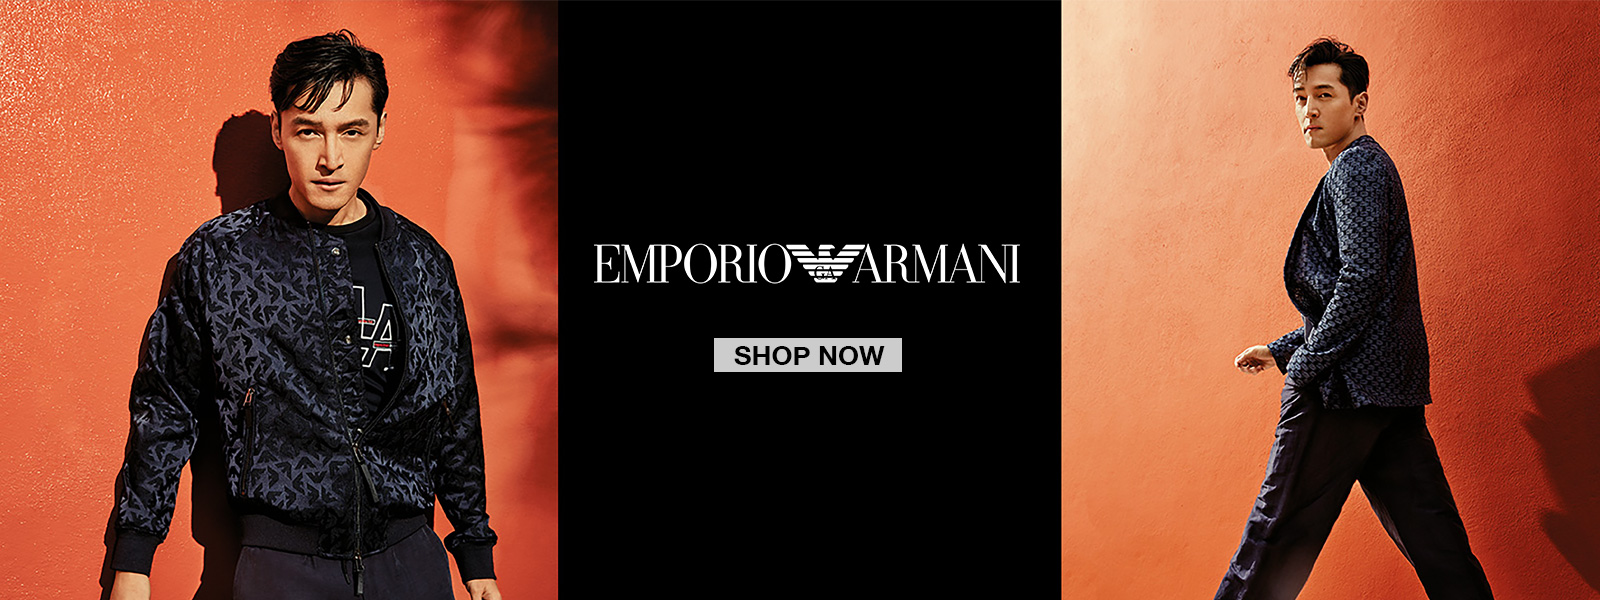 Emporio Armani - Spring Summer 19 Collection - Shop Now